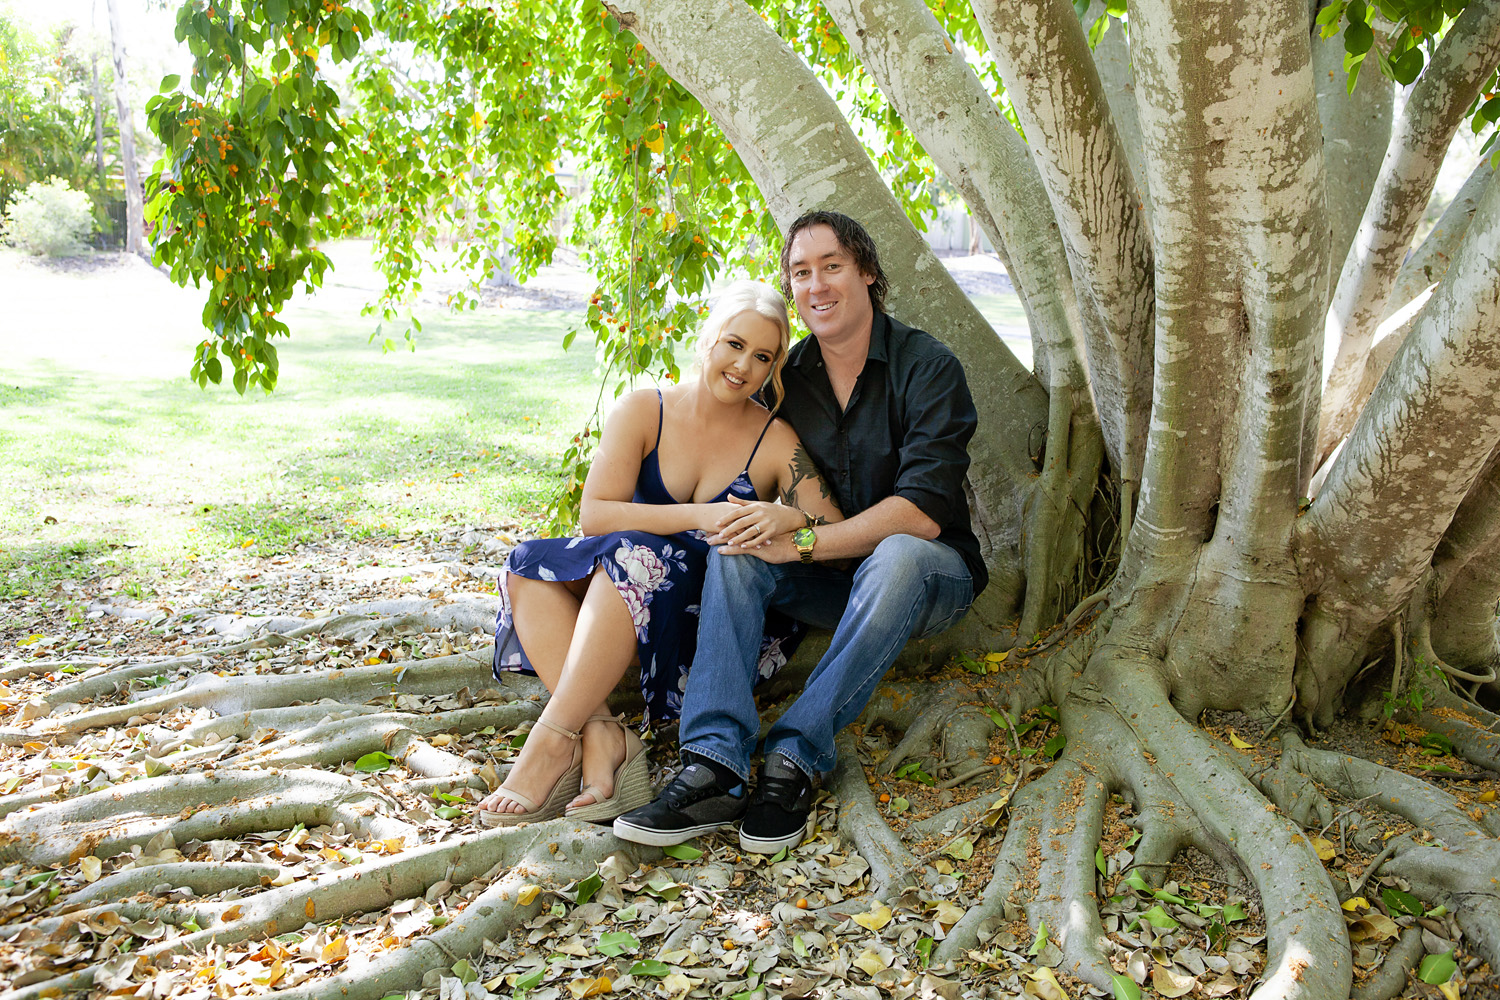 Couple sitting under a tree, couple snuggling with heads together, couple engaged, gold coast best portrait photographer, gold coast best couple photography, gold coast couple portraits, gold coast photographer, gold coast engagement, gold coast engagement photoshoot, gold coast engagement shoot, gold coast engagement photography, engagement shoot with personality, lana noir, @lananoir, gold coast natural light photography, gold coast outdoor photography, robina photographer, broadbeach photographer, gold coast professional photographer, gold coast couple, couple photography